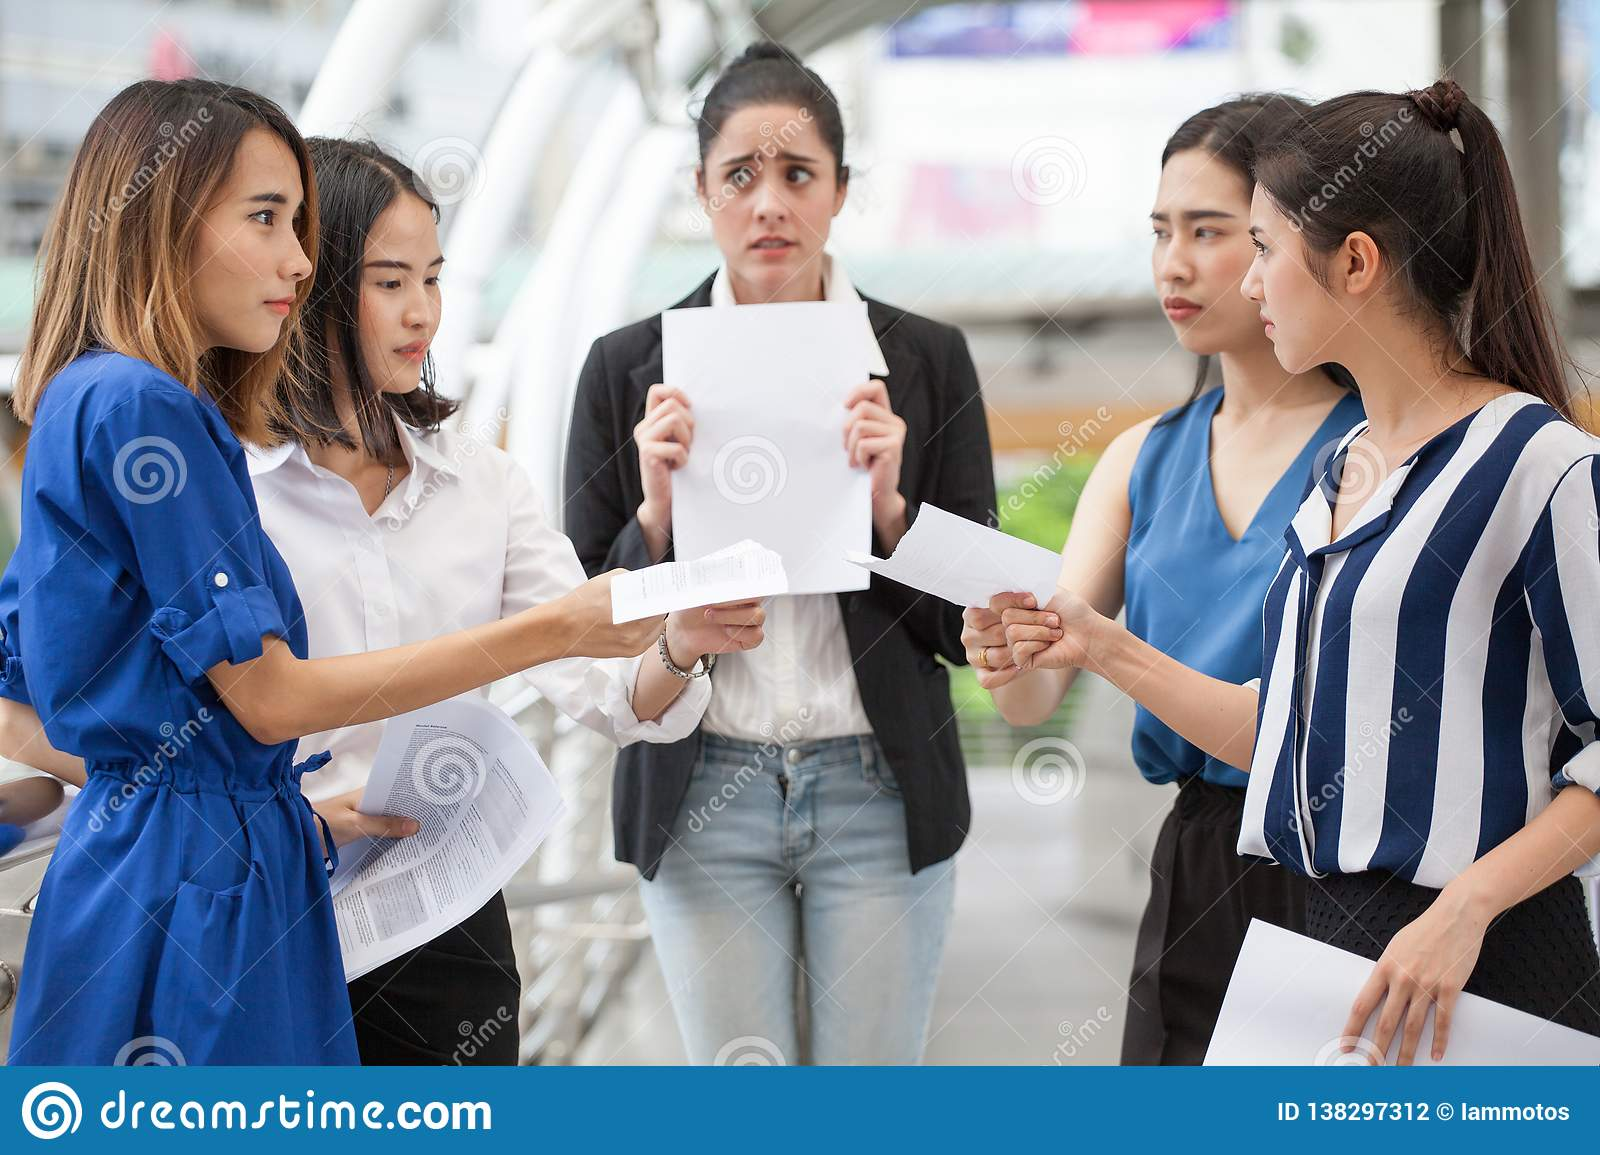 happy young businesswoman is showing money and laptop with blank copy space screen and clipping path in urban city. girl holding